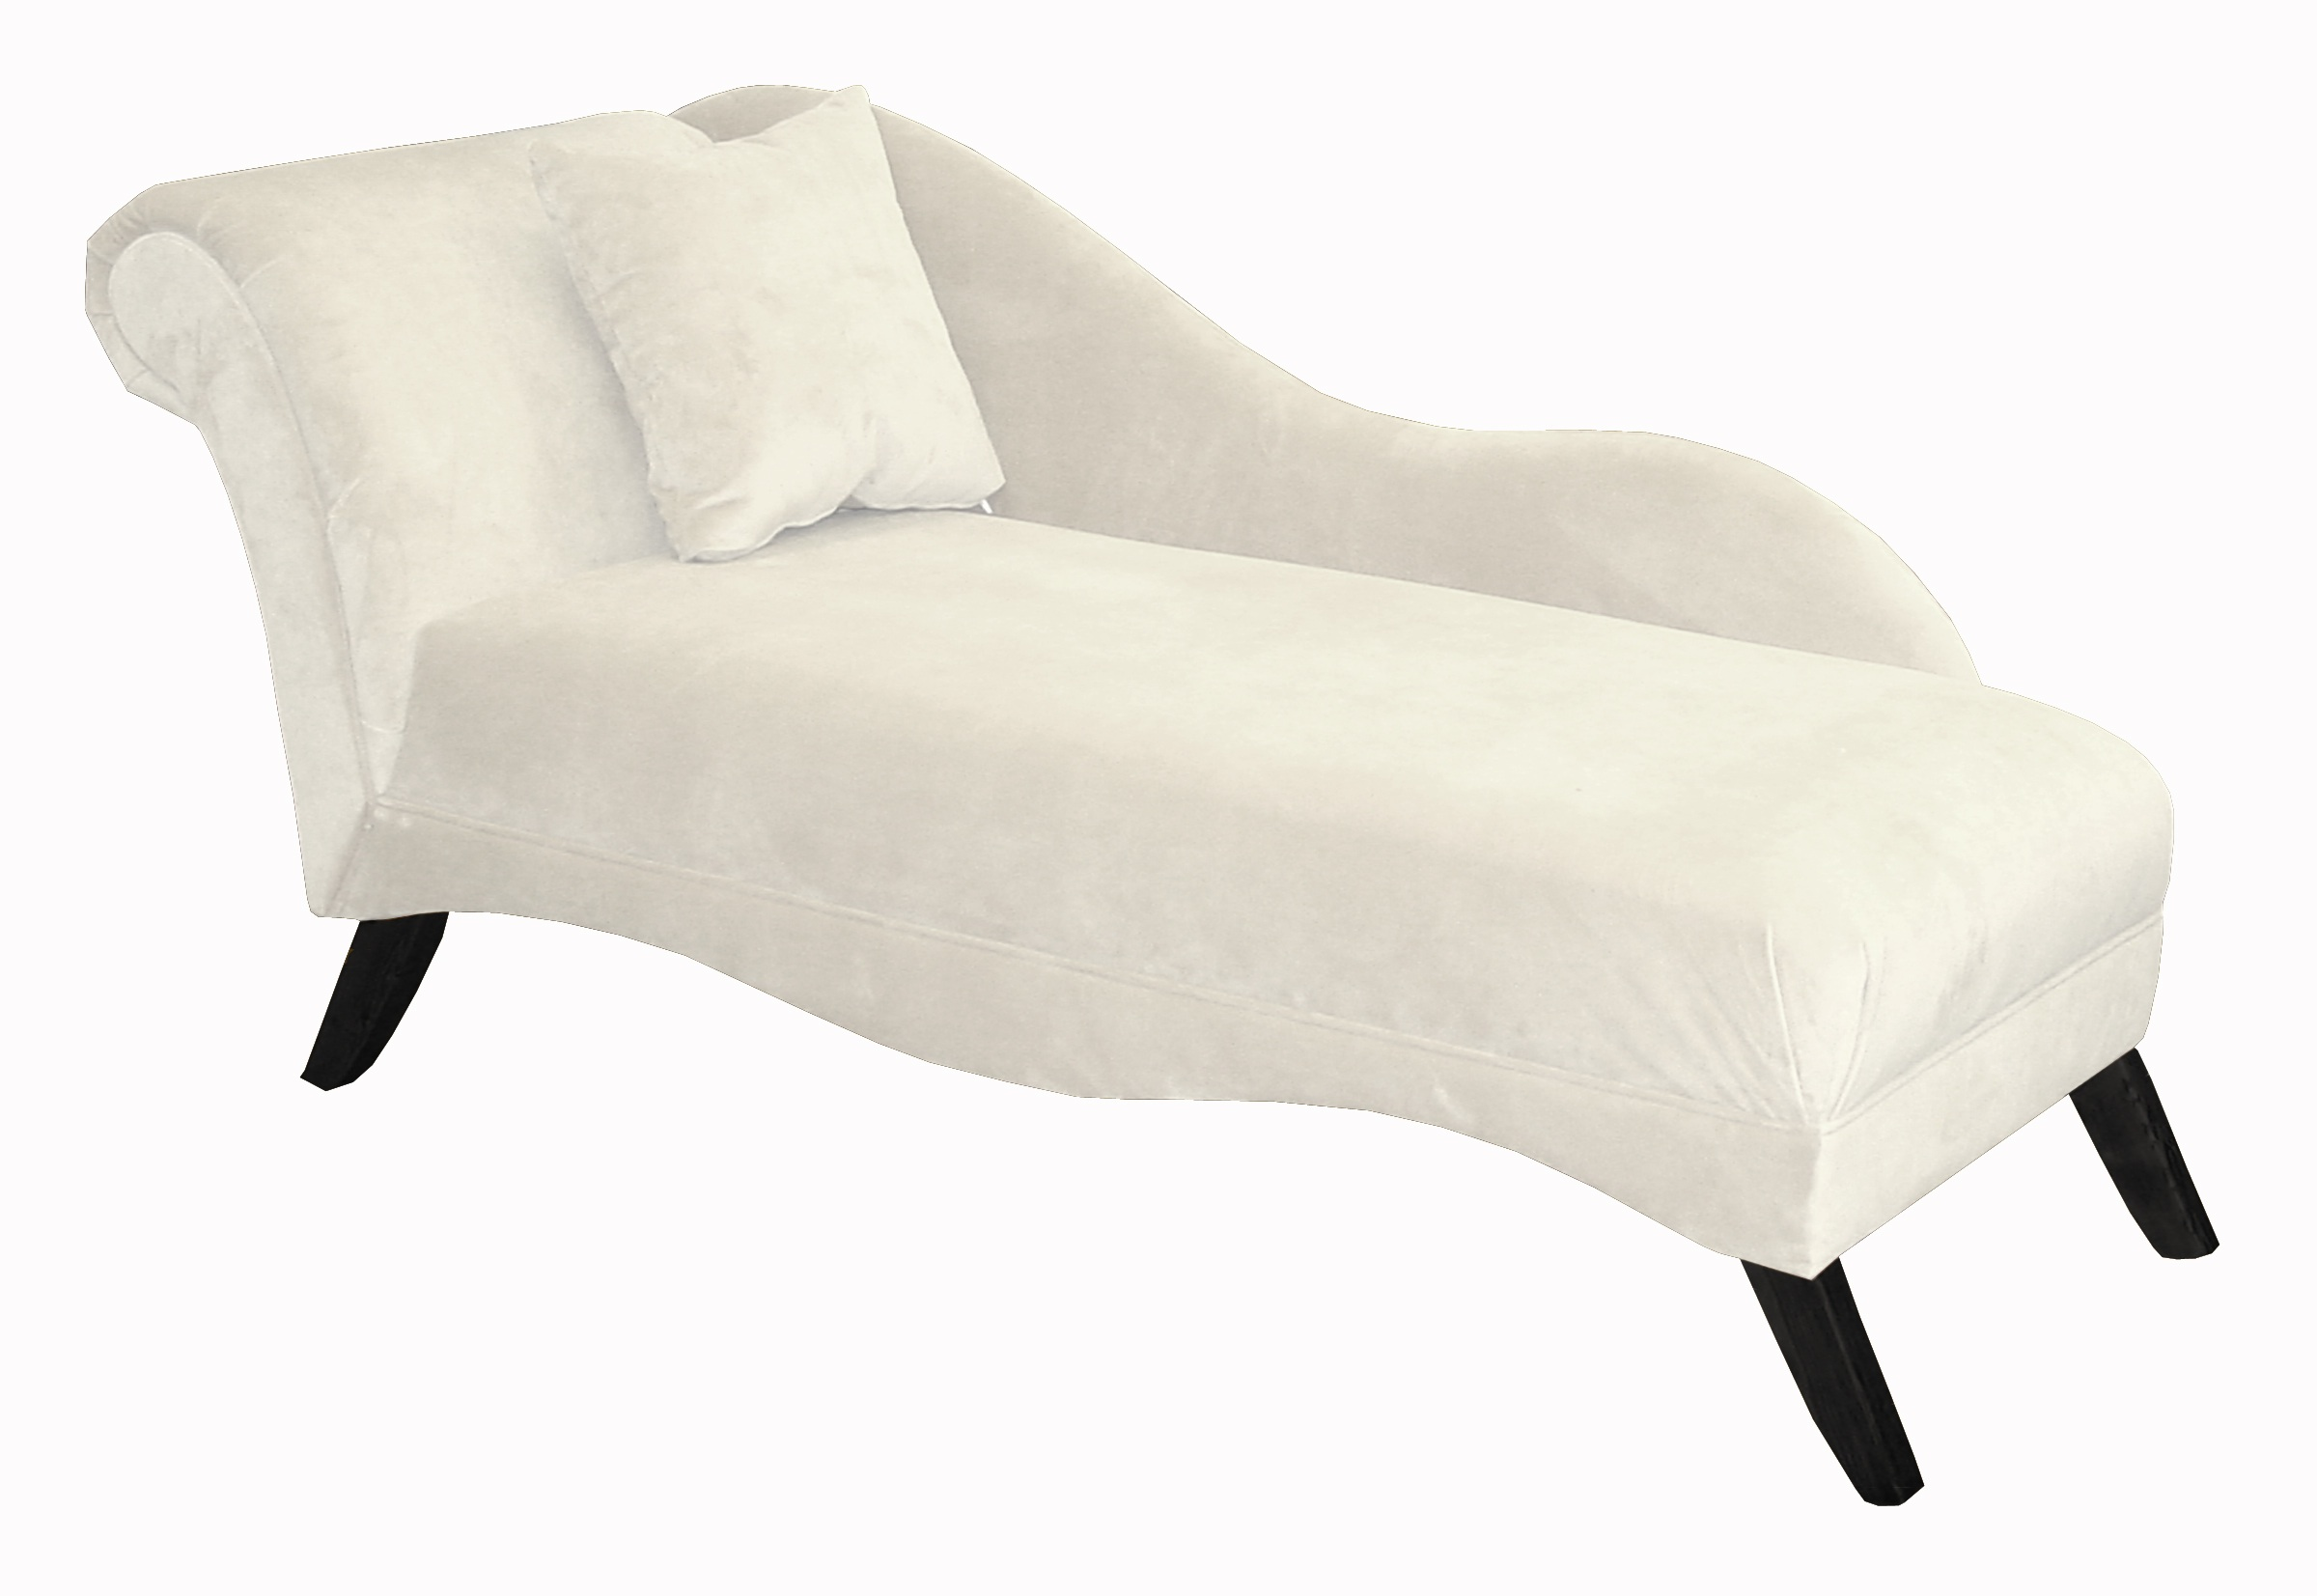 double lounge chair outdoor grey chaise lounge chair white chaise lounge chair ebedfcb